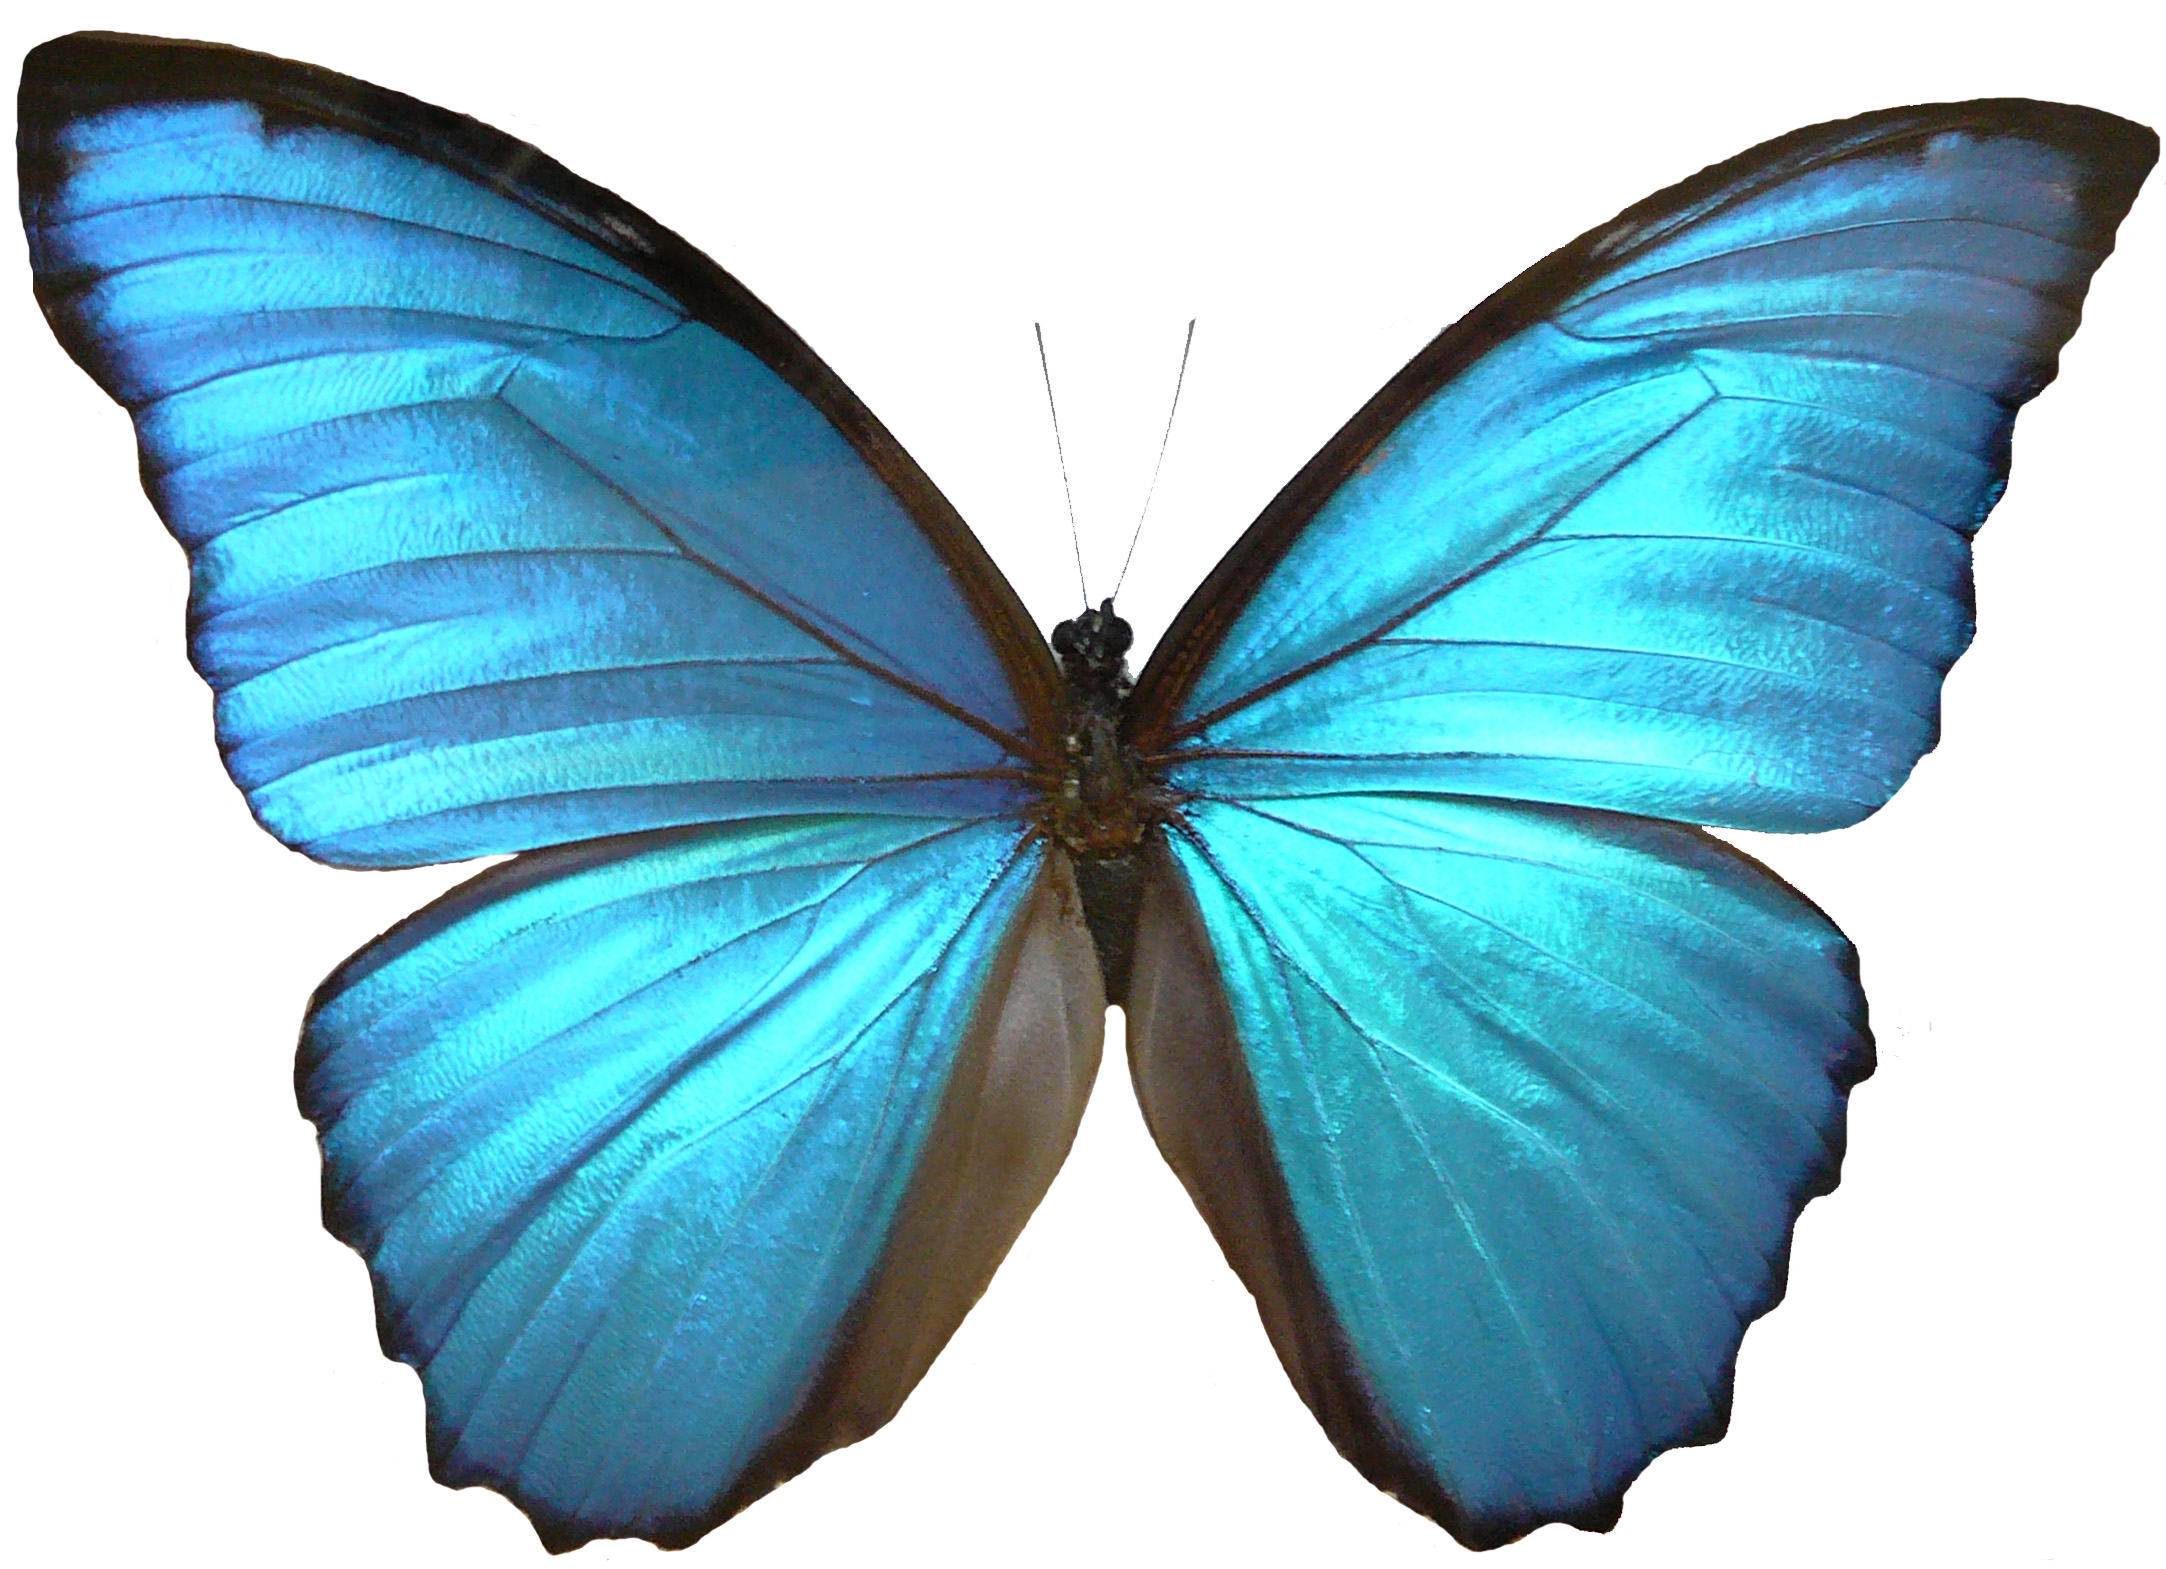 Drawn butterfly blue butterfly Black edged body morpho with